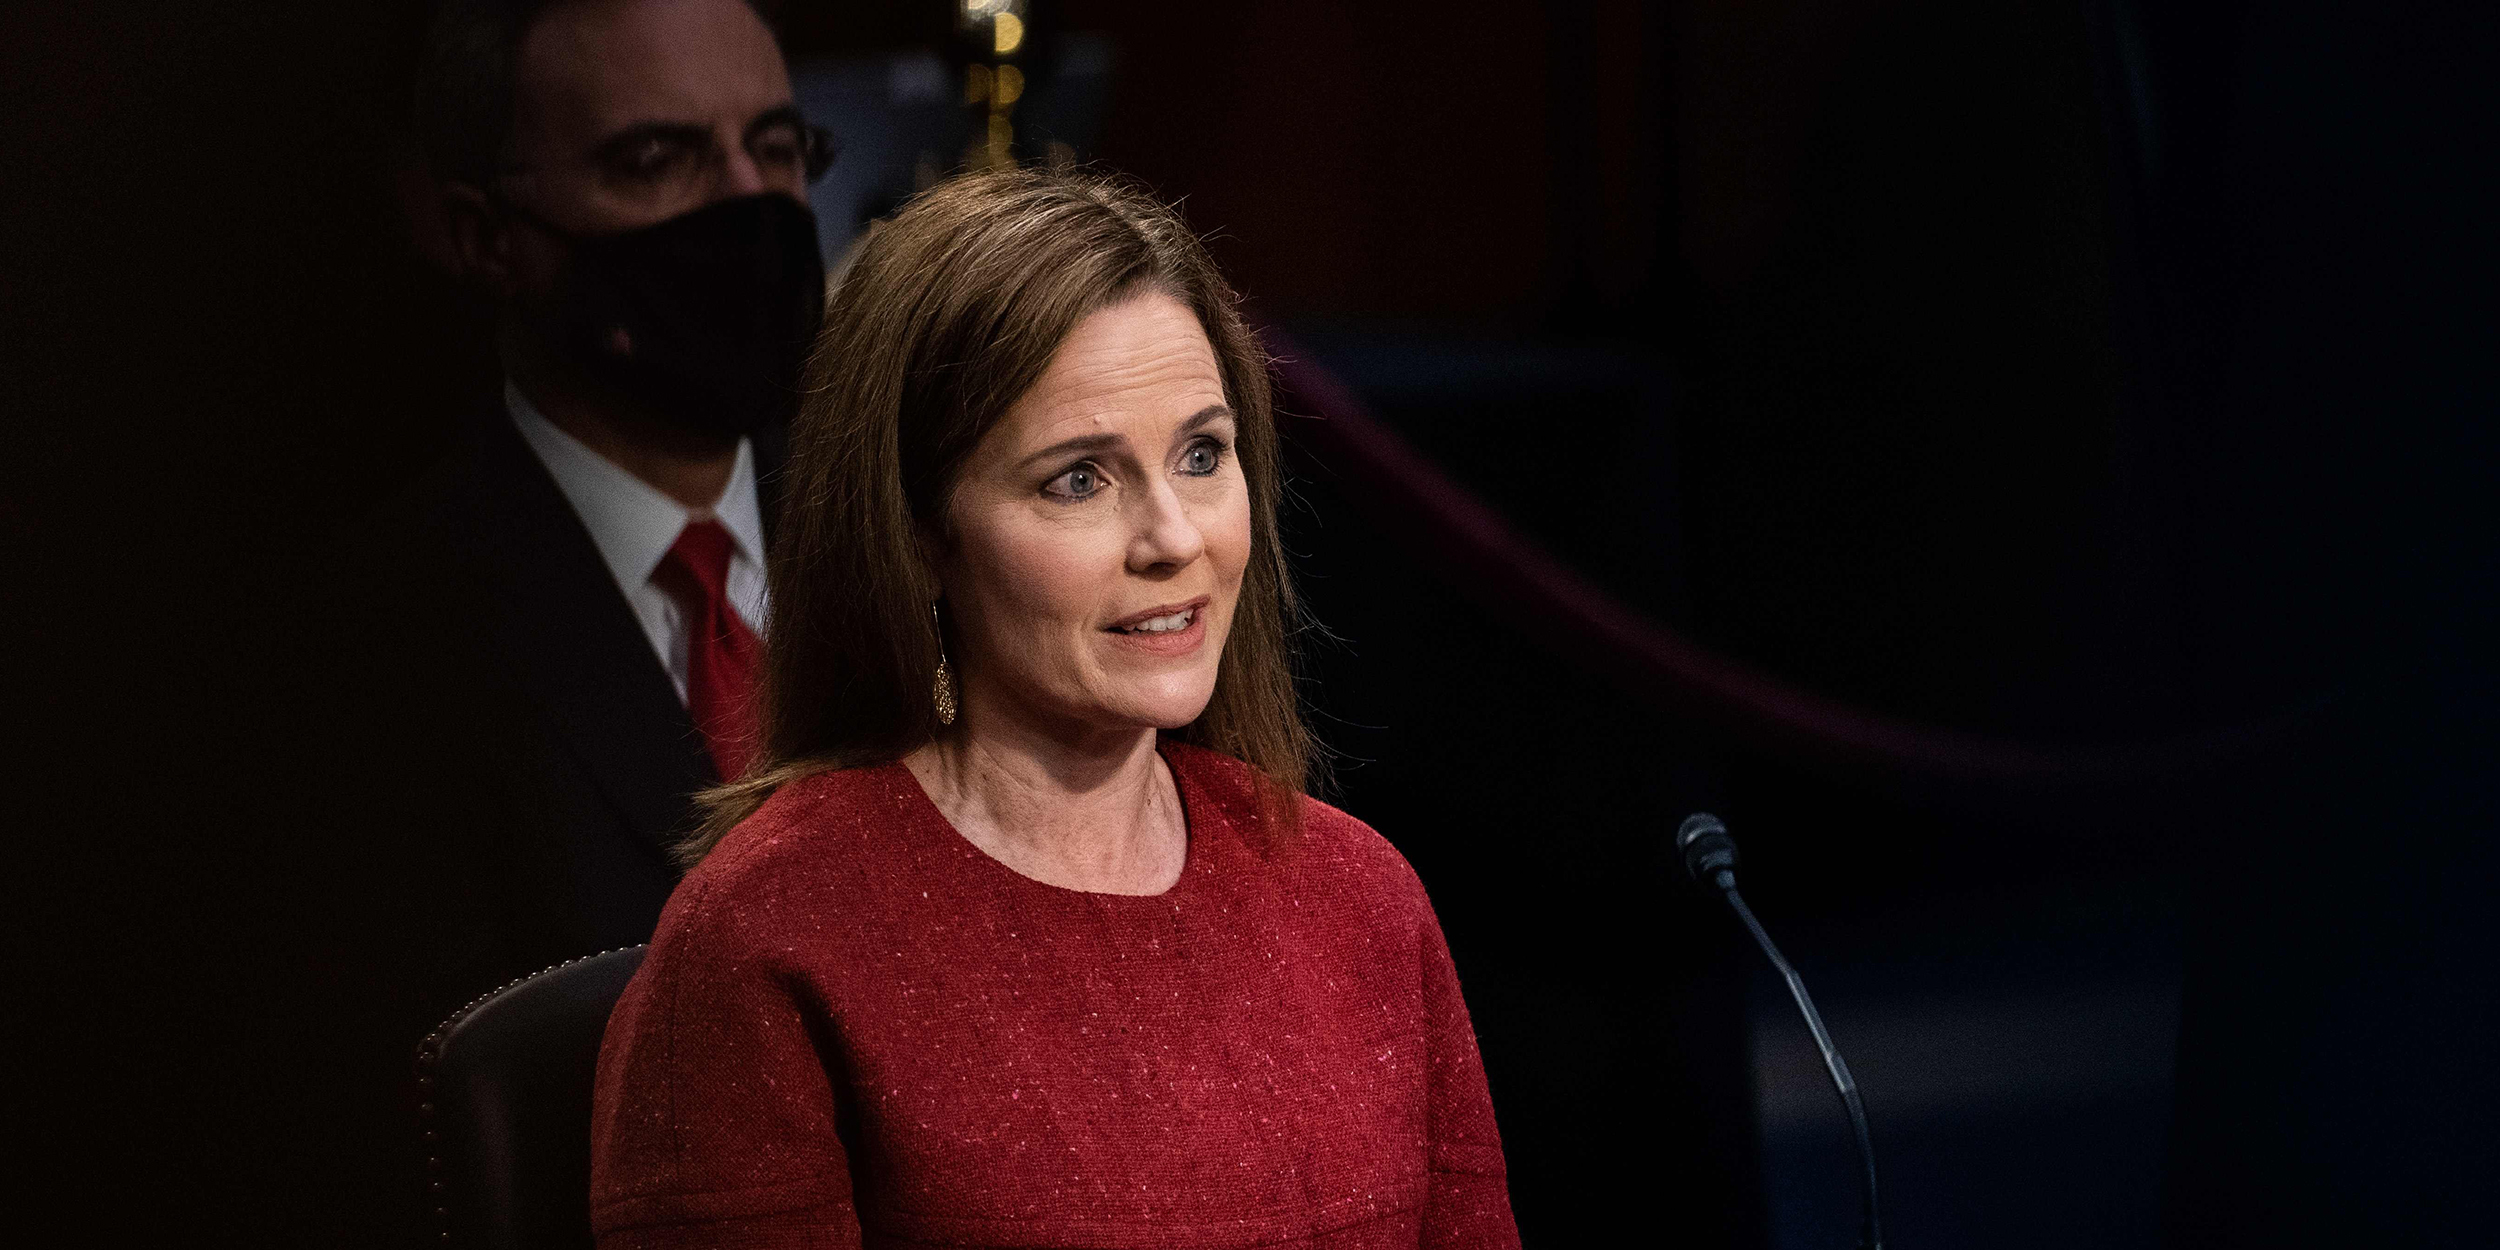 Trump's words haunt Amy Coney Barrett as she vows not to be a 'pawn' on  Supreme Court